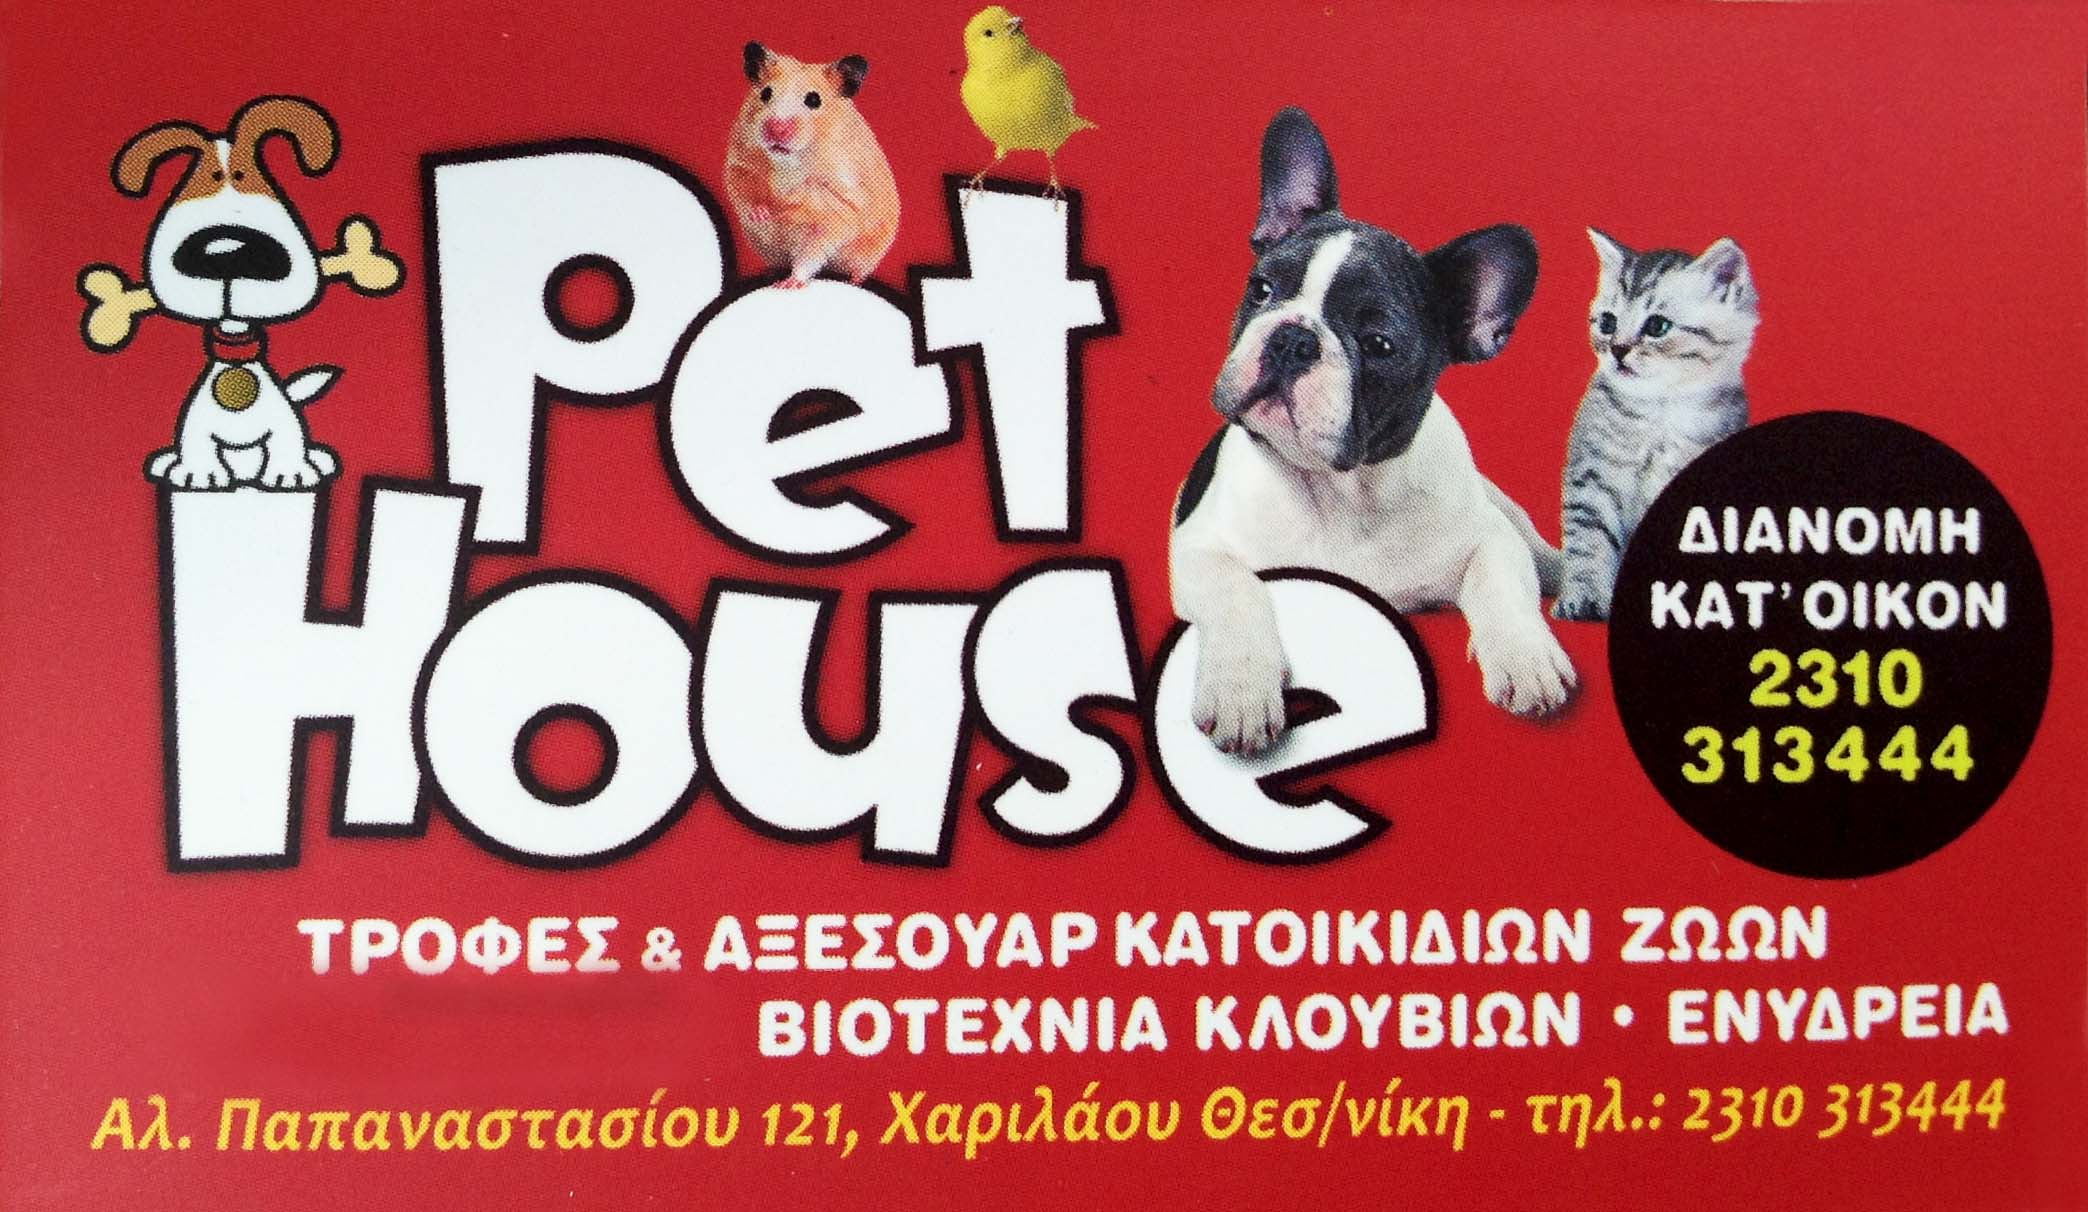 http://www.lovemypet.gr/images/stories/petshopThessaloniki/kthniatros-pethouse.jpg